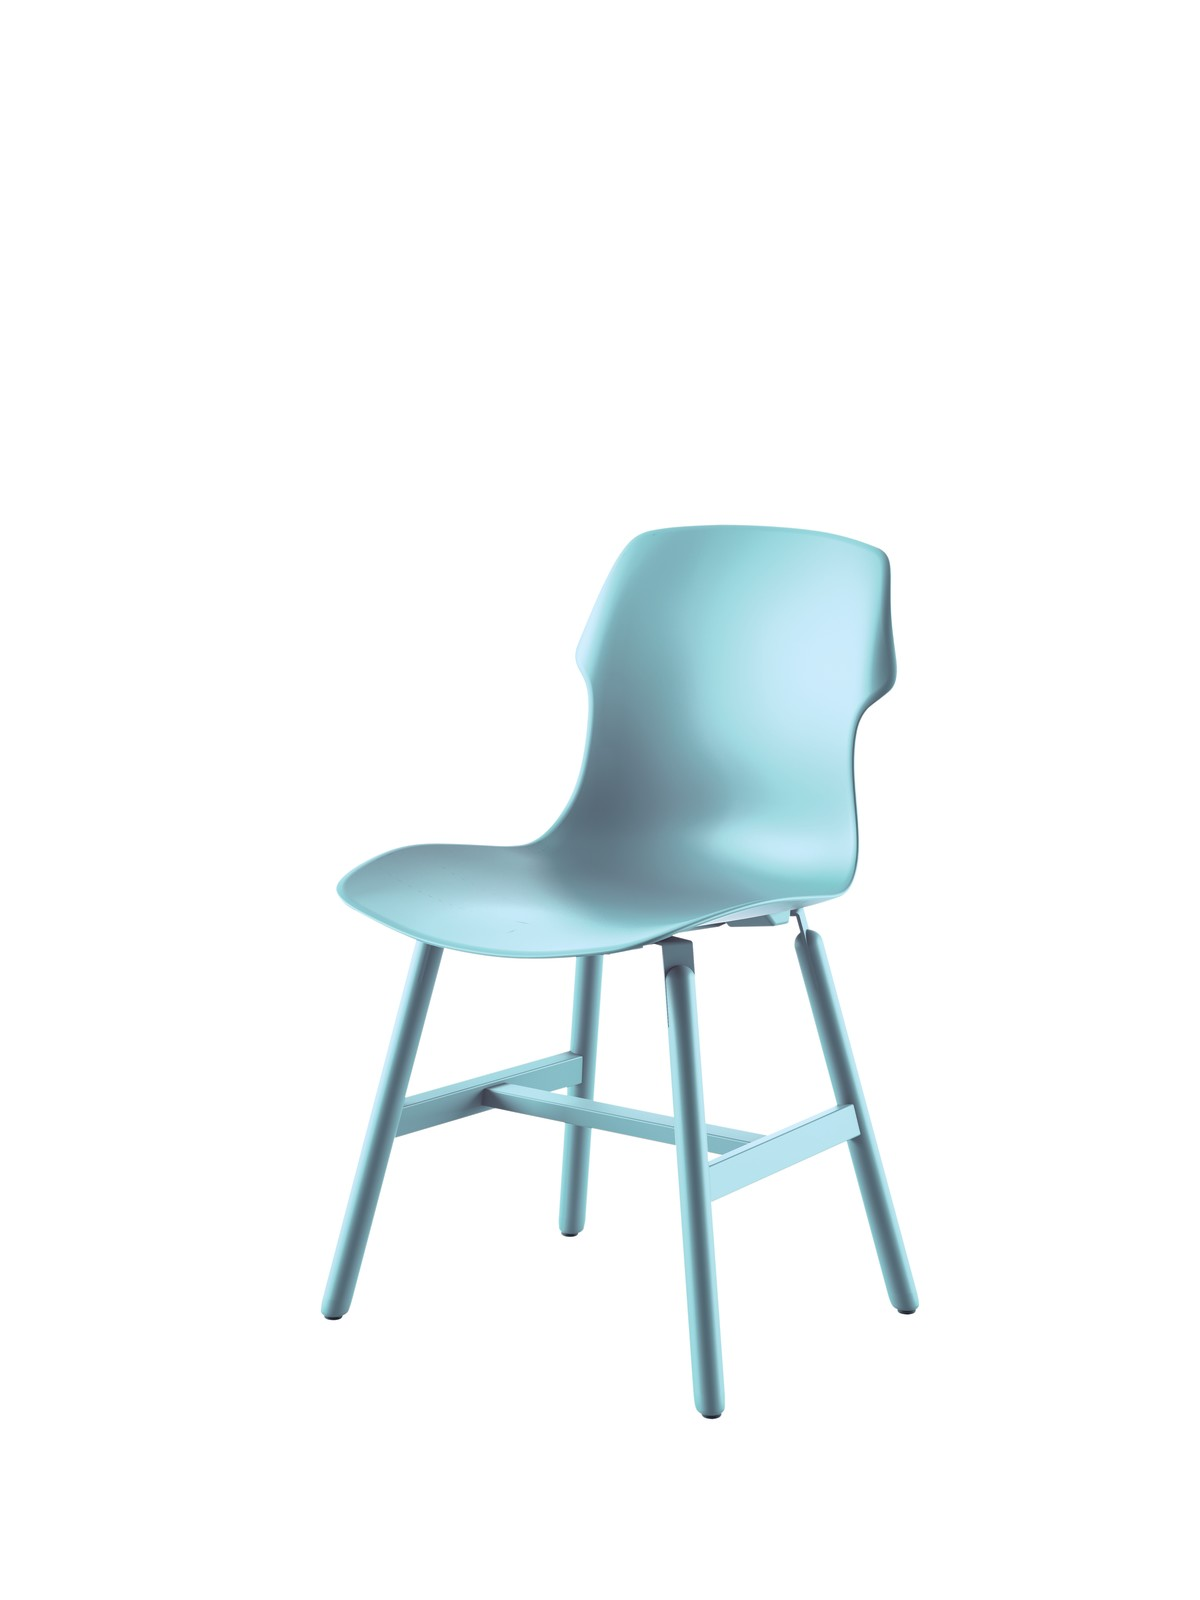 Stereo Metal Chair - Set of 2 Light Blue